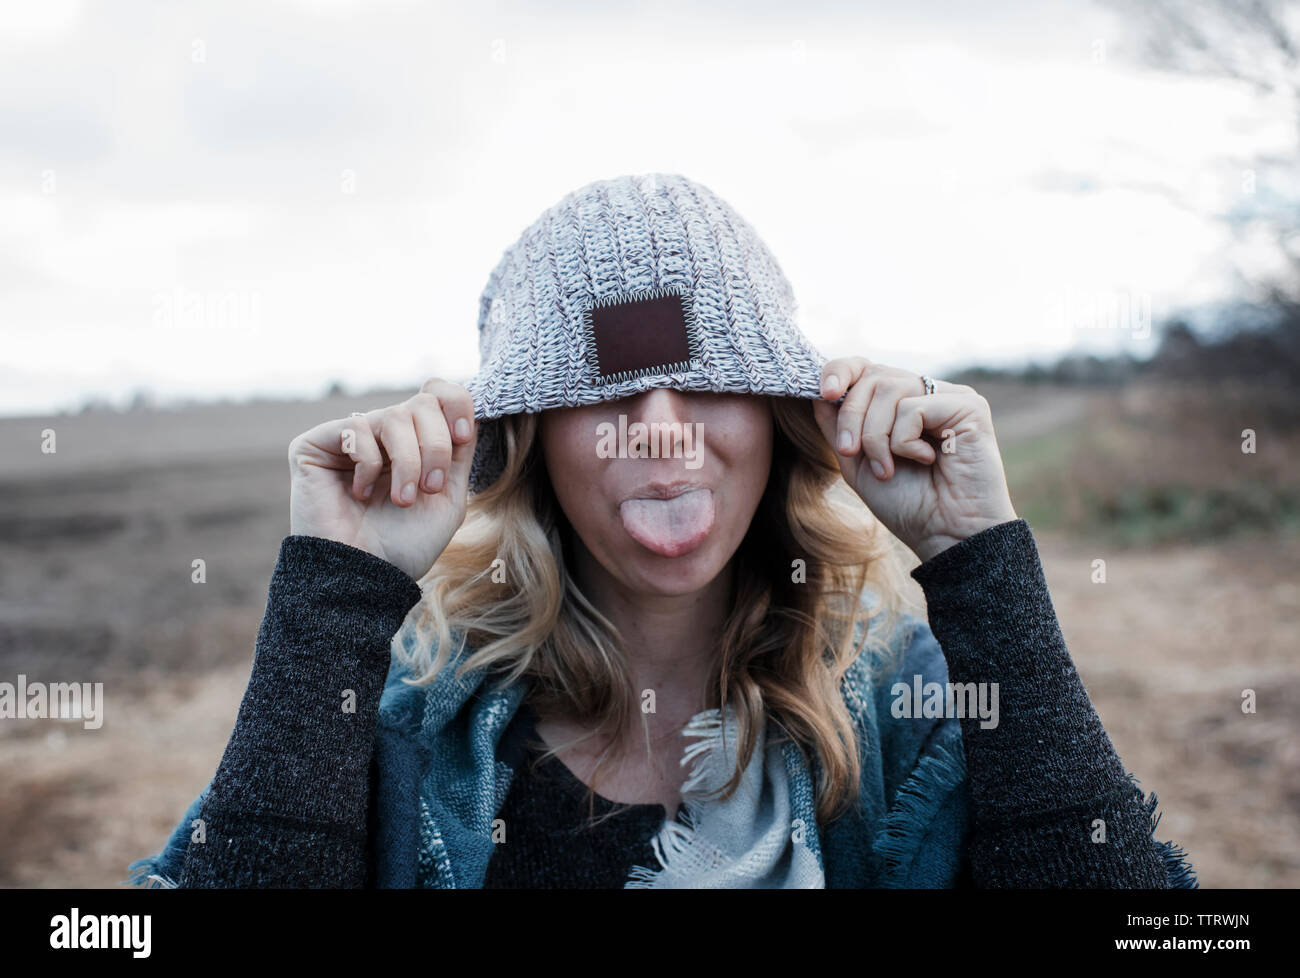 Close-up of playful woman covering eyes with knit hat sticking out tongue while standing on landscape against cloudy sky Stock Photo